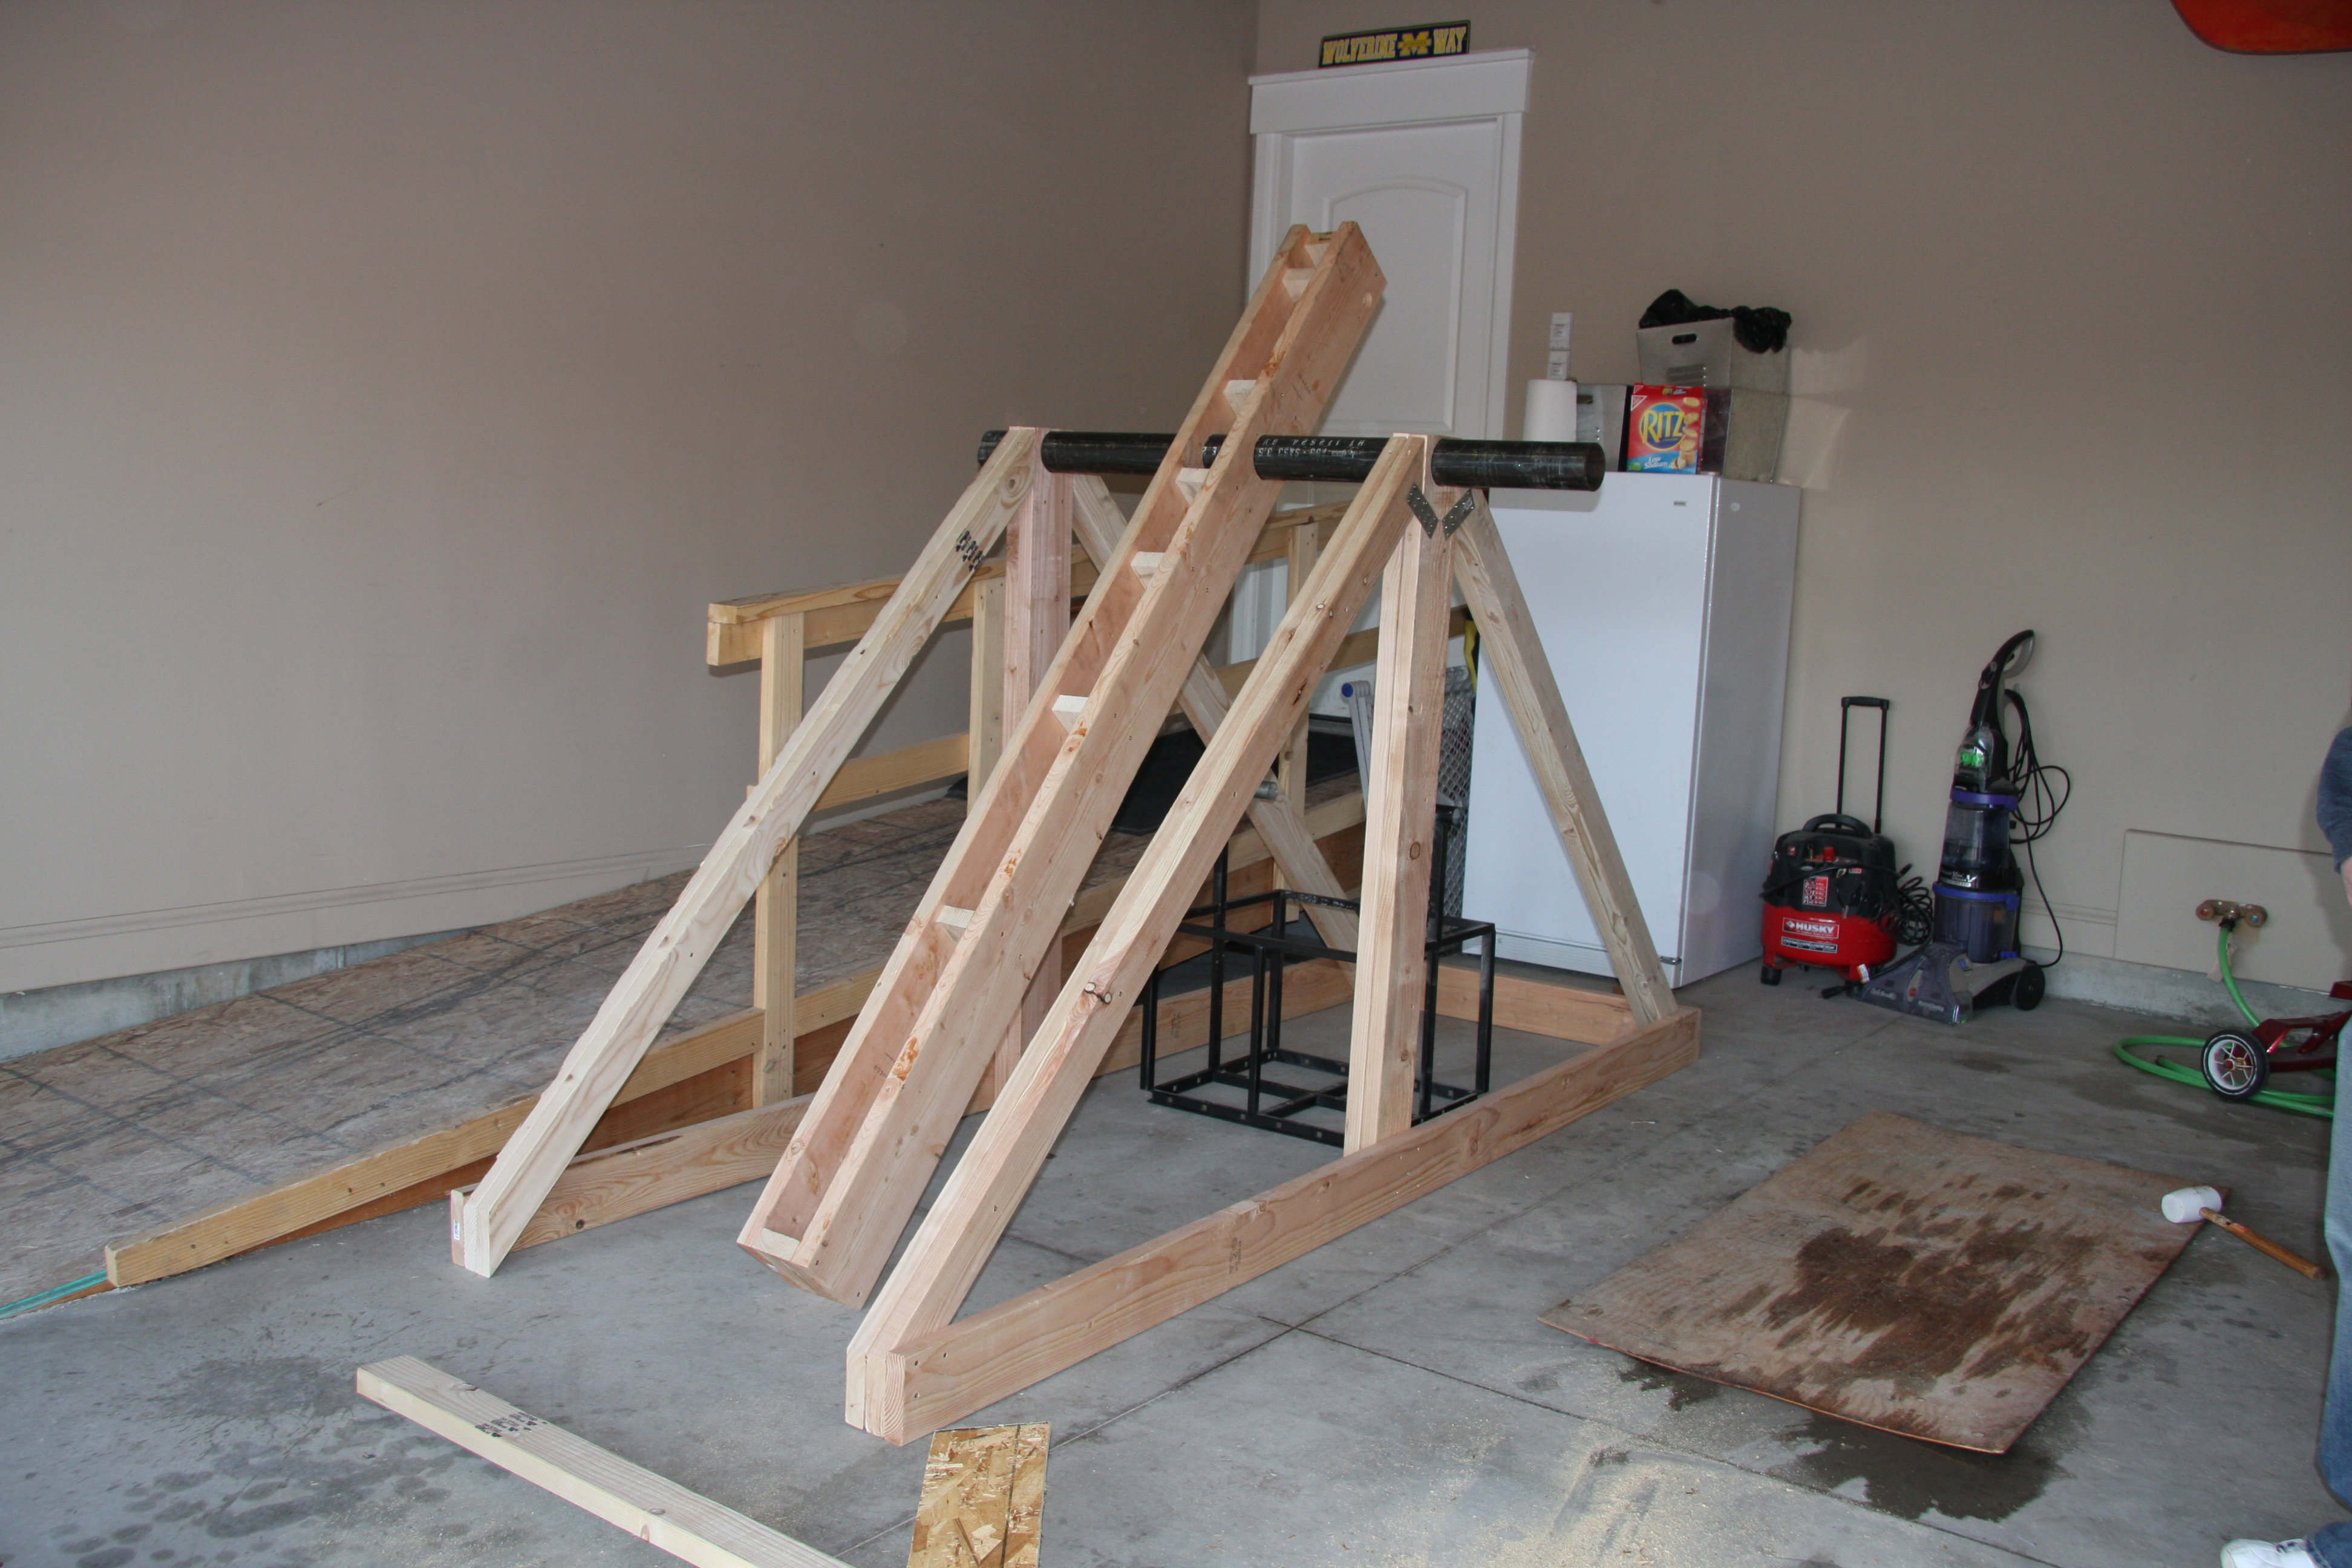 what is a trebuchet A trebuchet is actually a type of catapult, and a catapult is any device that throws an object which can be rocks or explosives catapults were popular weapons during the medieval times hence, catapults were also referred to as medieval siege weapons.